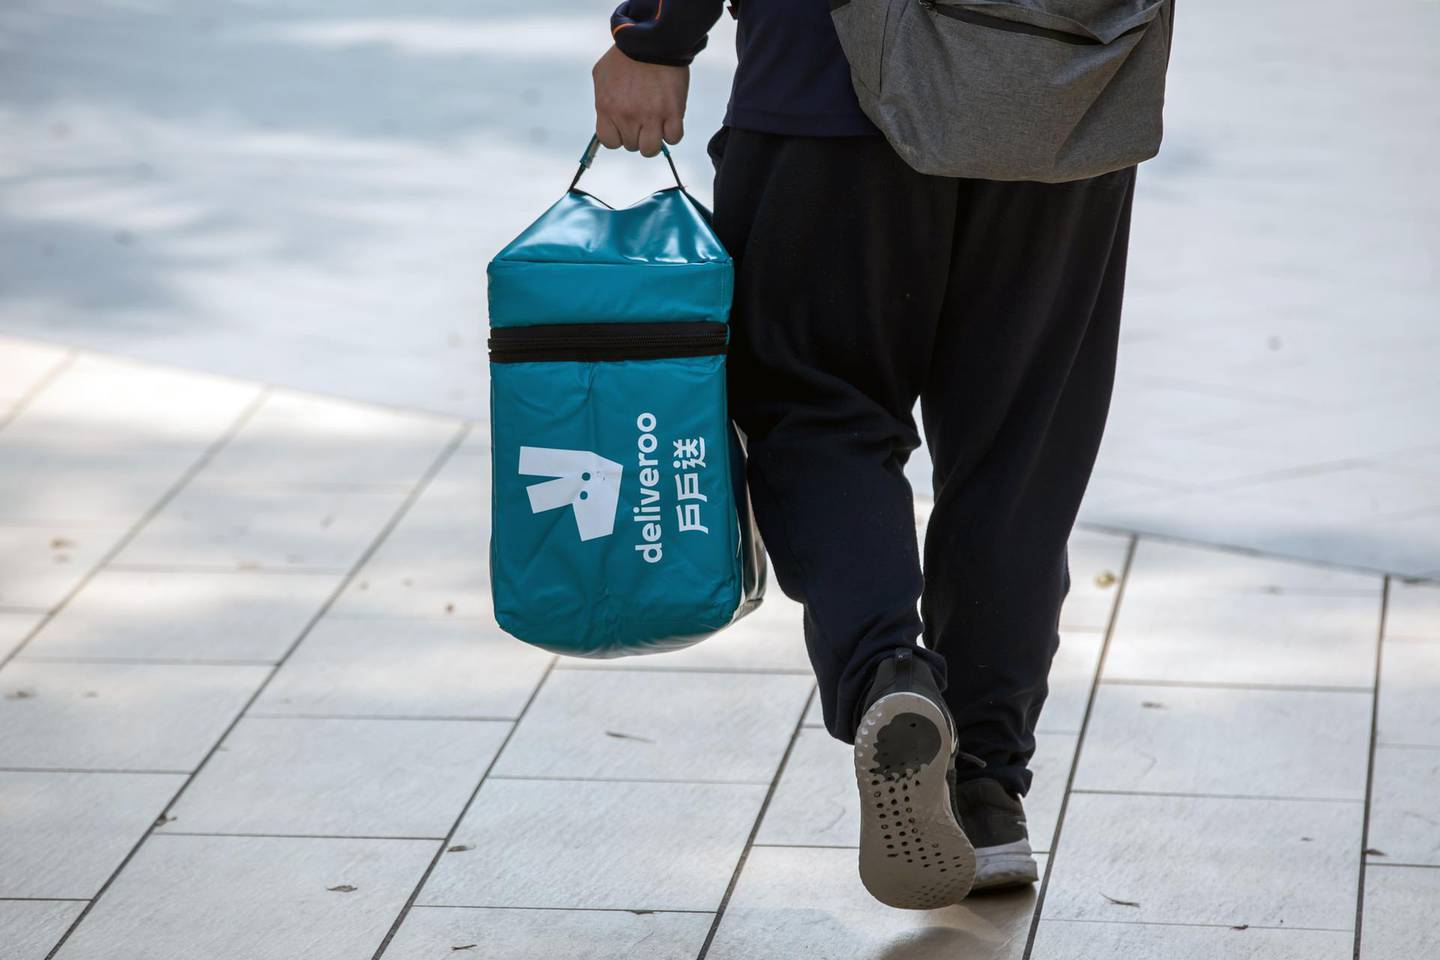 A Deliveroo food delivery worker carries an insulated food bag in Hong Kong, China, on Thursday, Feb. 20, 2020. A group of 59 Hong Kong police officers are being quarantined after a fellow officer preliminarily tested positive for the virus, the city's police force said in a statement on Facebook. Photographer: Paul Yeung/Bloomberg